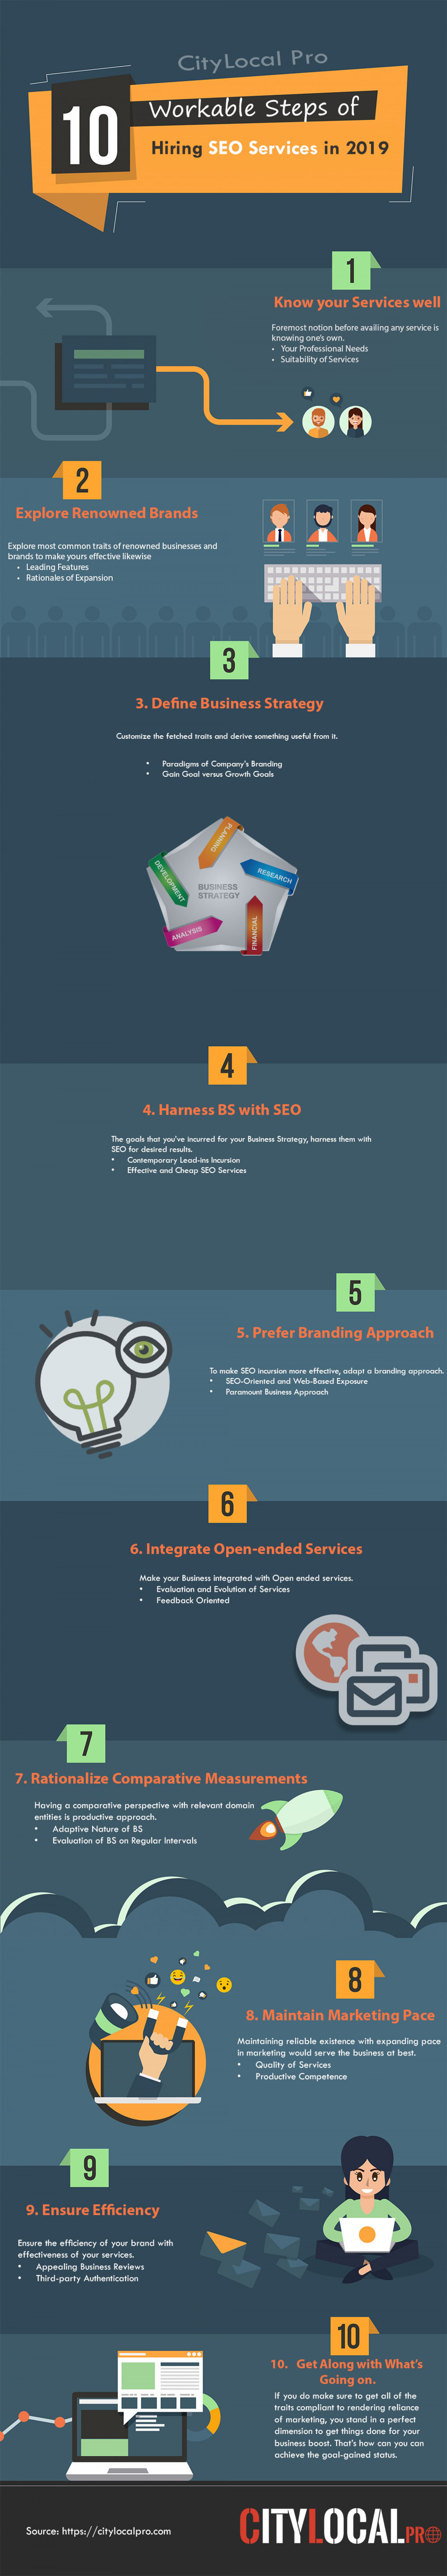 10 Workable Steps of Hiring SEO Services in 2019 Infographic